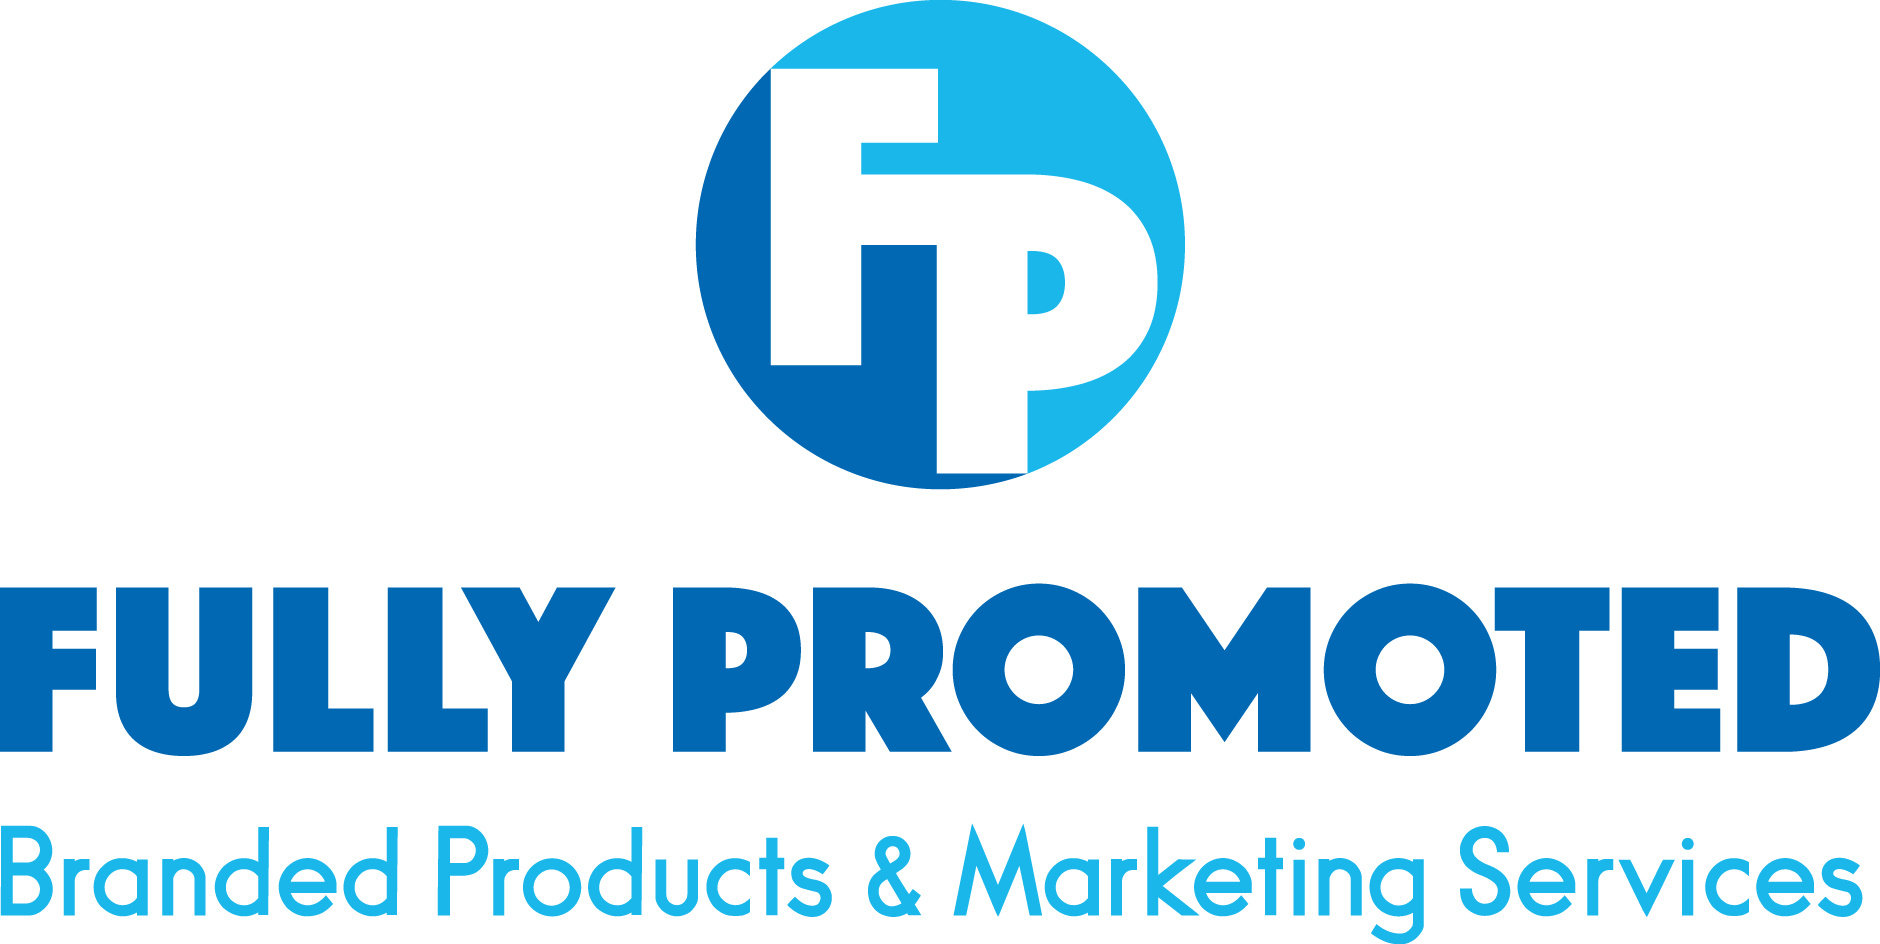 Fully Promoted Branded Products Franchise Expansion in Aggieland!